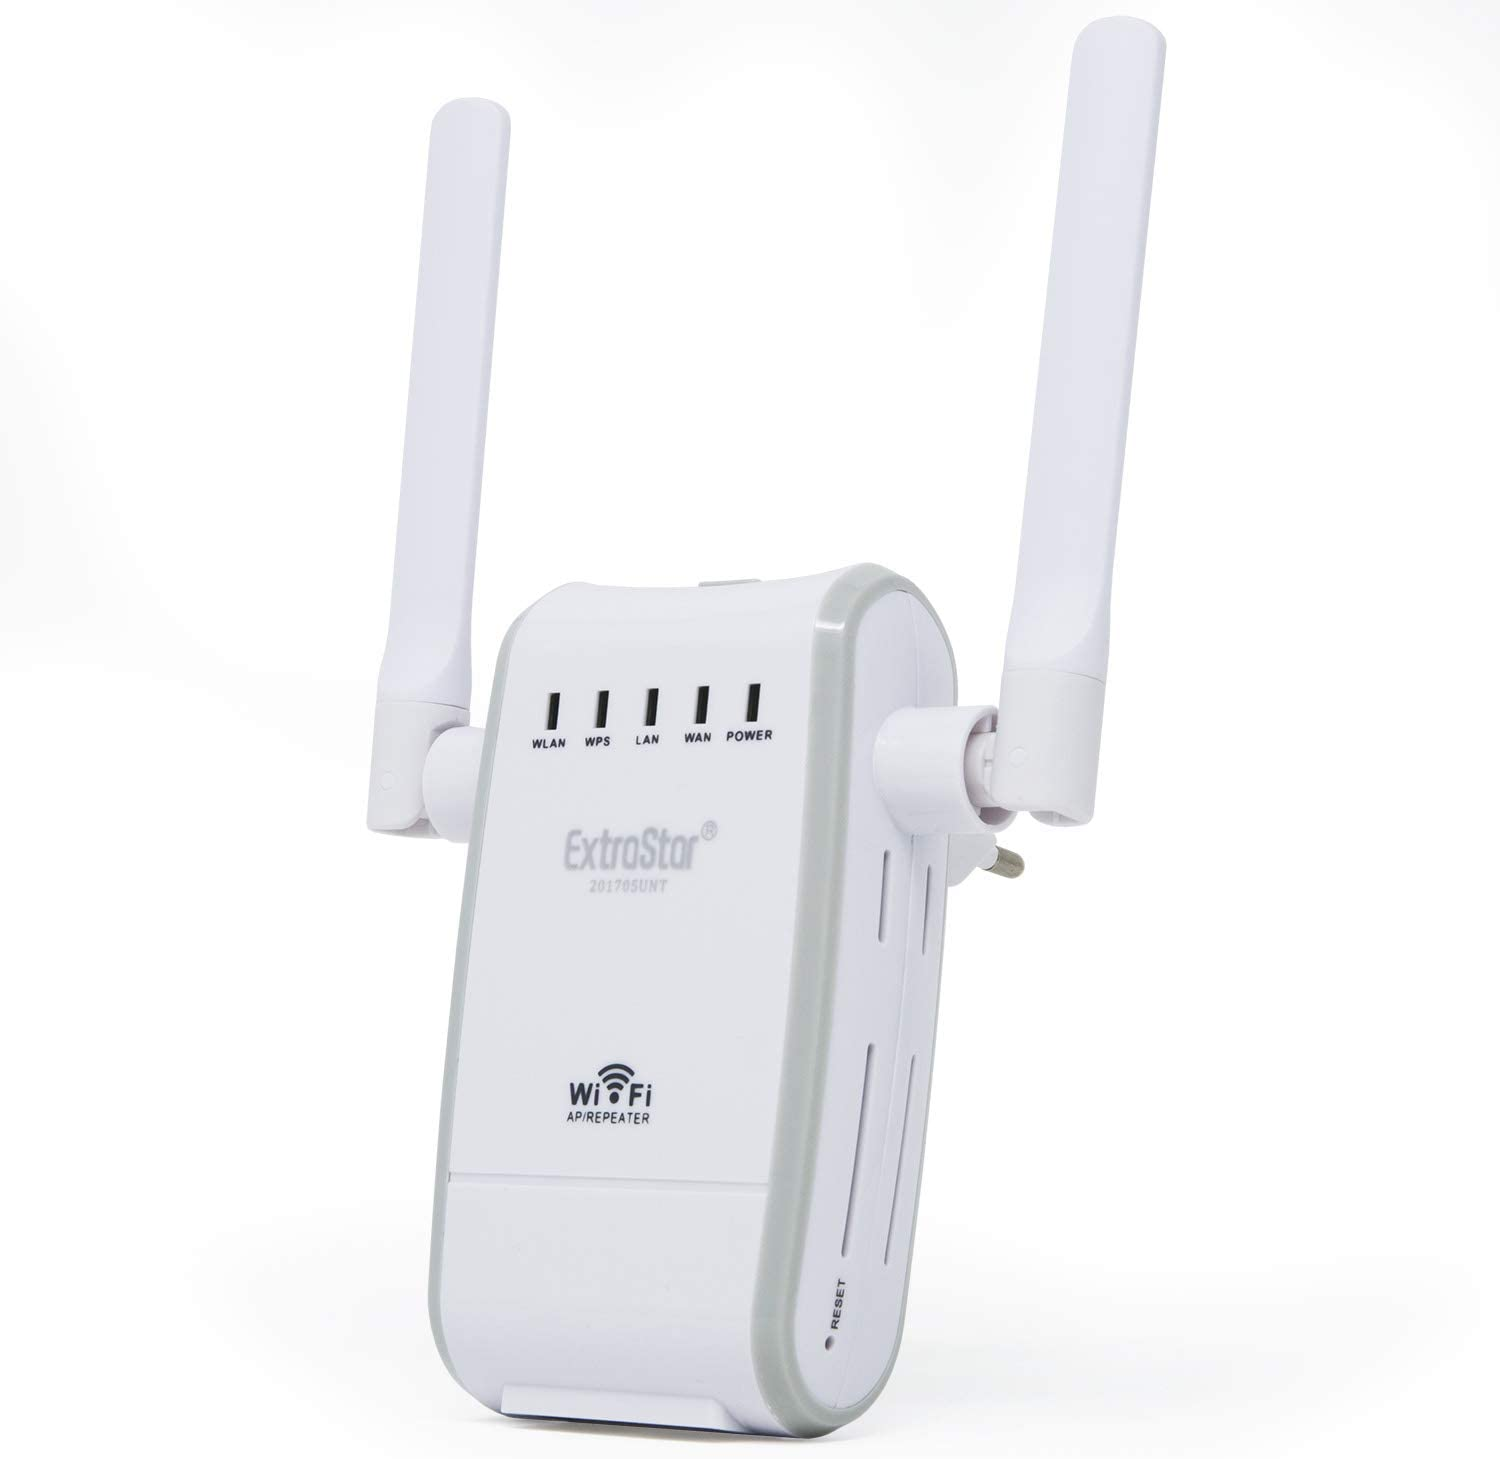 Extra Star WiFi Router Repetidor WiFi Dual Antena 300 Mbps con WPS wlan8454